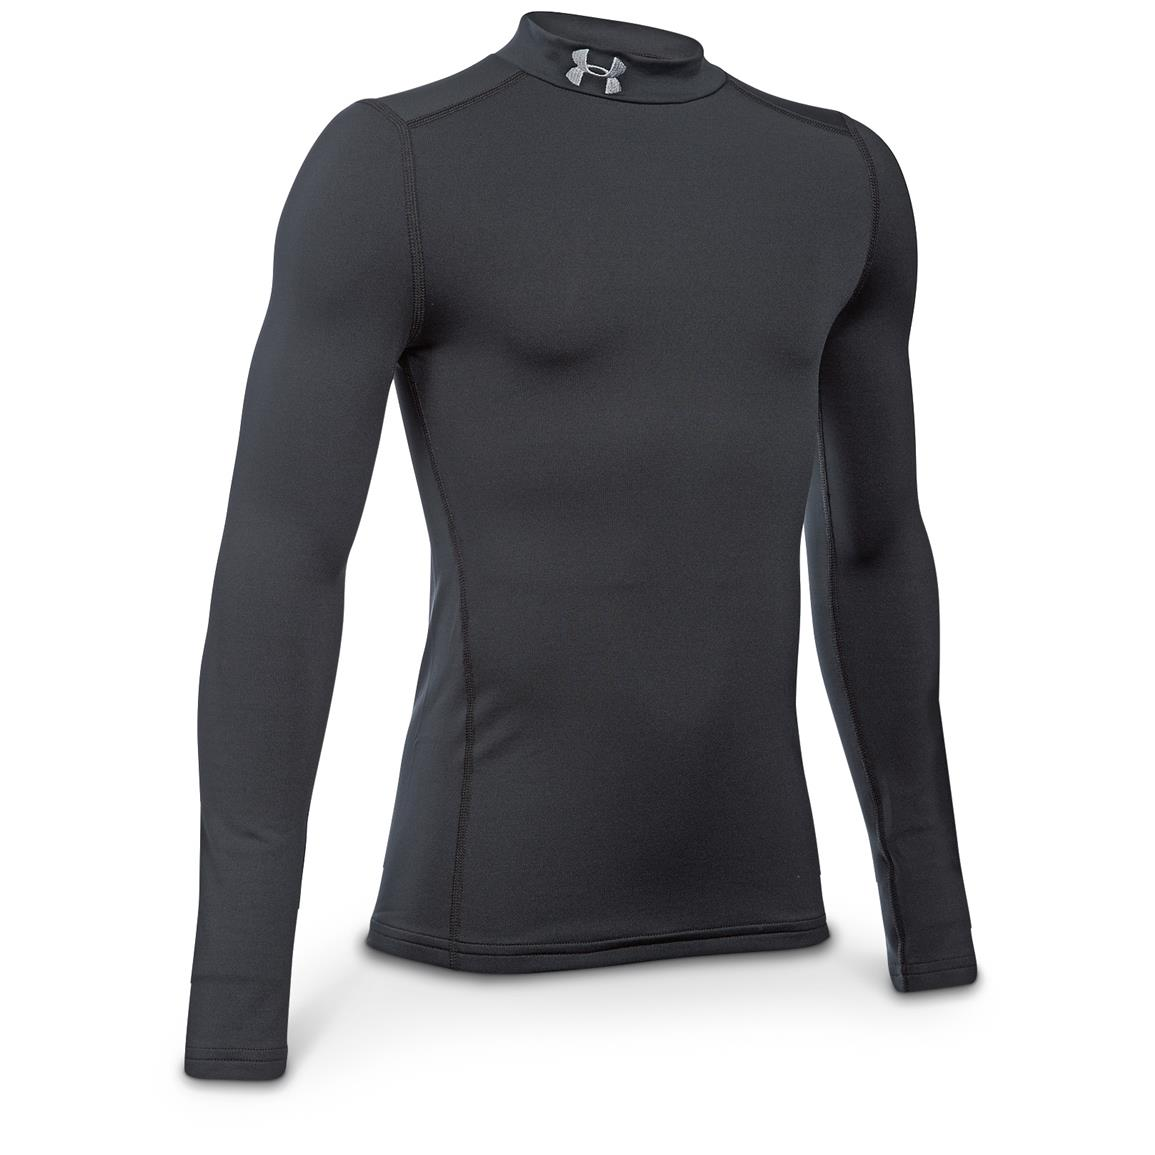 Under Armour Youth Coldgear Mock Long-Sleeve Base Layer Shirt, Black / Steel